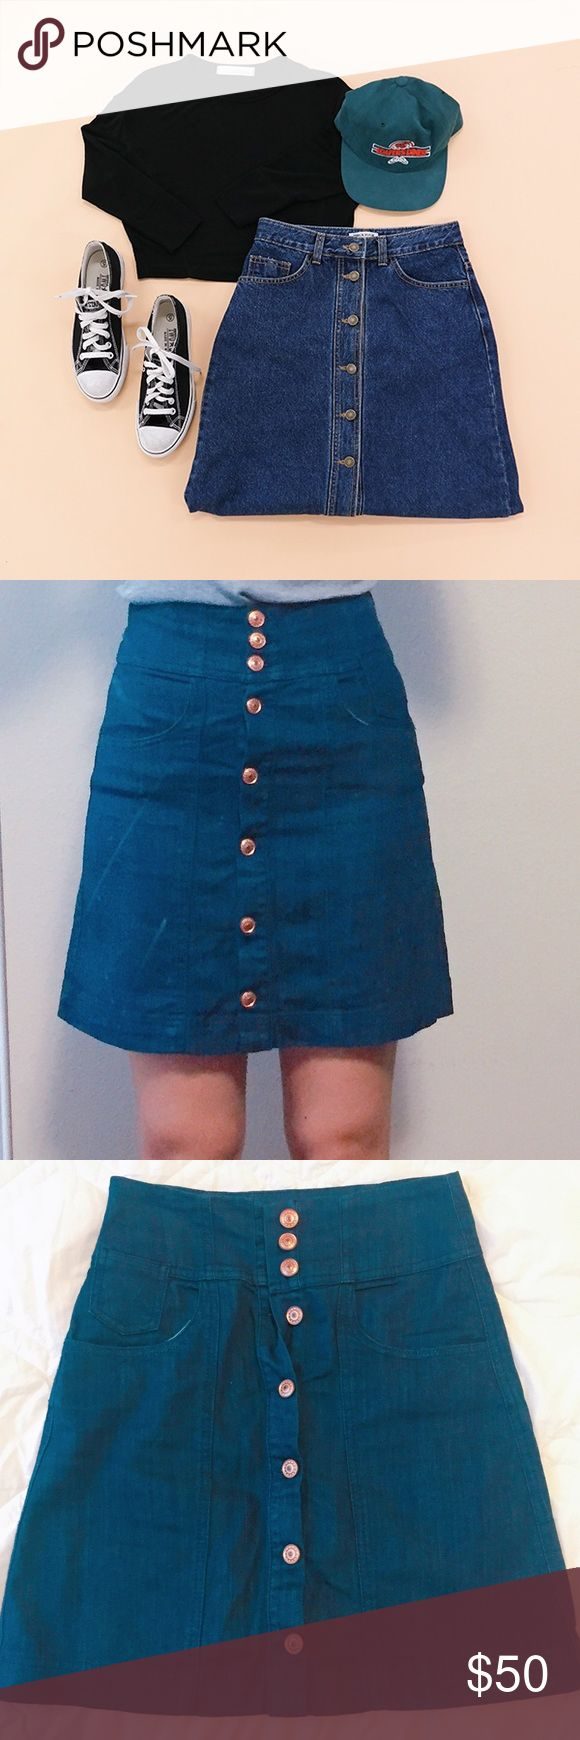 "NWOT Zara High waisted button up flare denim skirt NWOT Bershka denim button up flare skirt. Never worn,  excellent condition. High waisted. Denim with elastane blend, stretchy and comfy! Buttons on the front. A line flare fit. Total length: 18"", waist: 26"", hip: 34"". Edge of the skirt:  40"". PRICE FIRM. It's from Bershka, Zara's company. Feel free to ask any questions if you have. Thank you  Zara Skirts A-Line or Full"